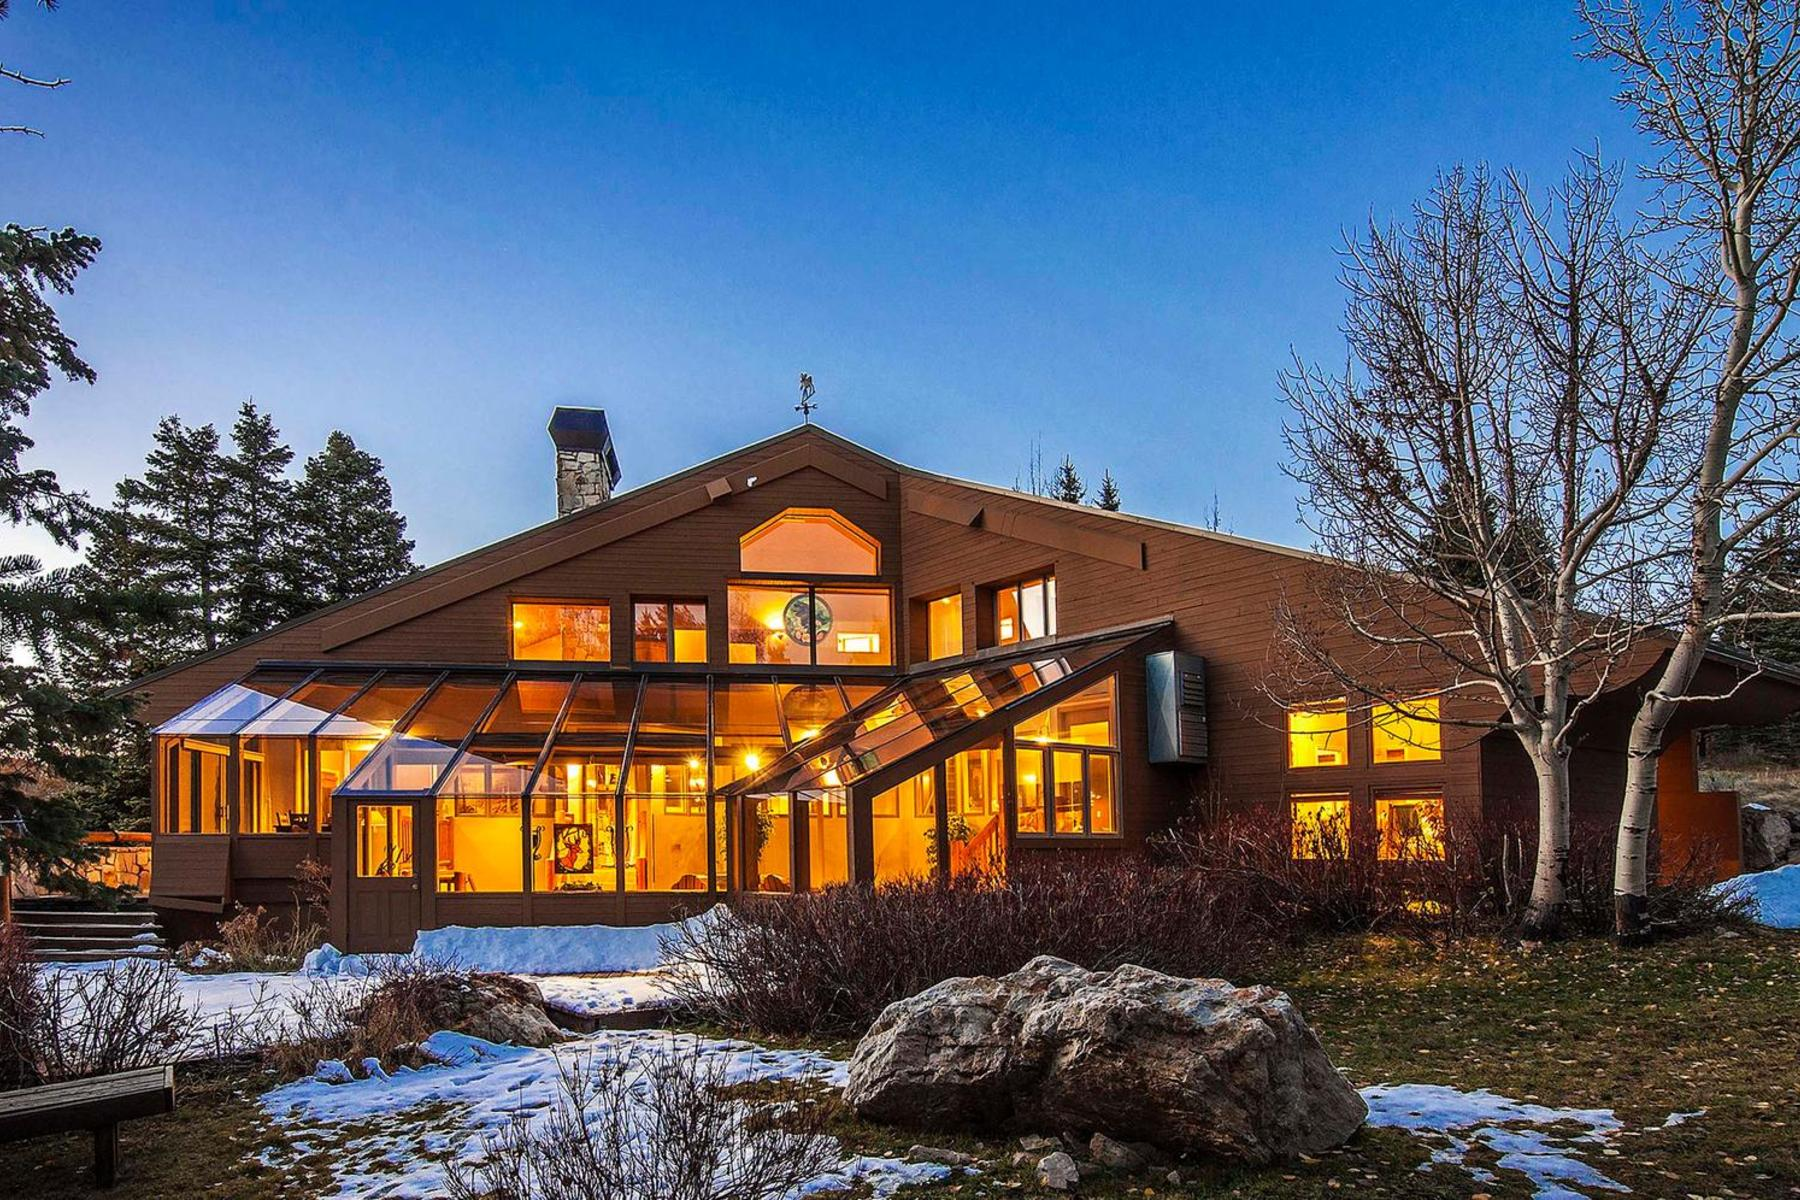 Property For Sale at Spacious Ski Home in Deer Valley